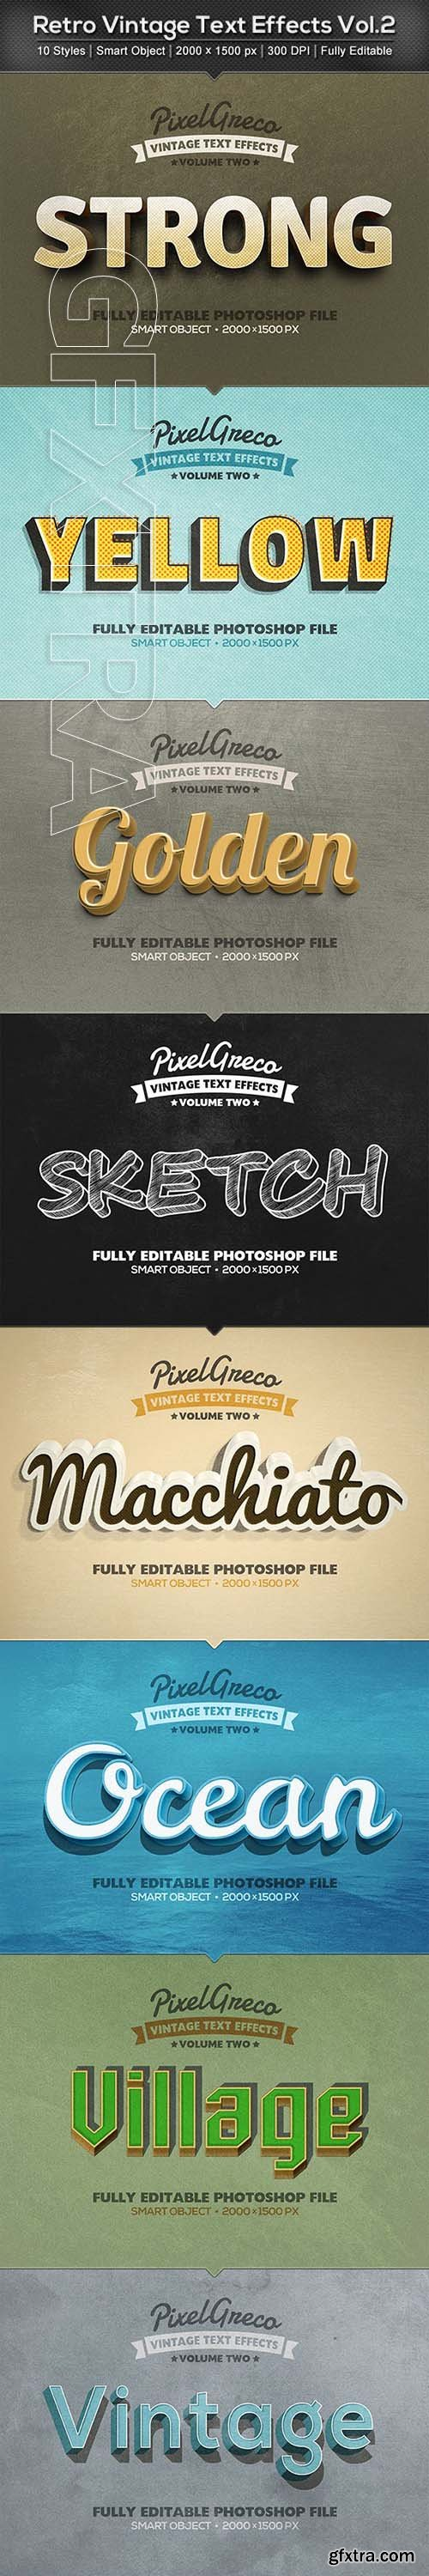 GraphicRiver - Retro Vintage Text Effects Vol2 22891278